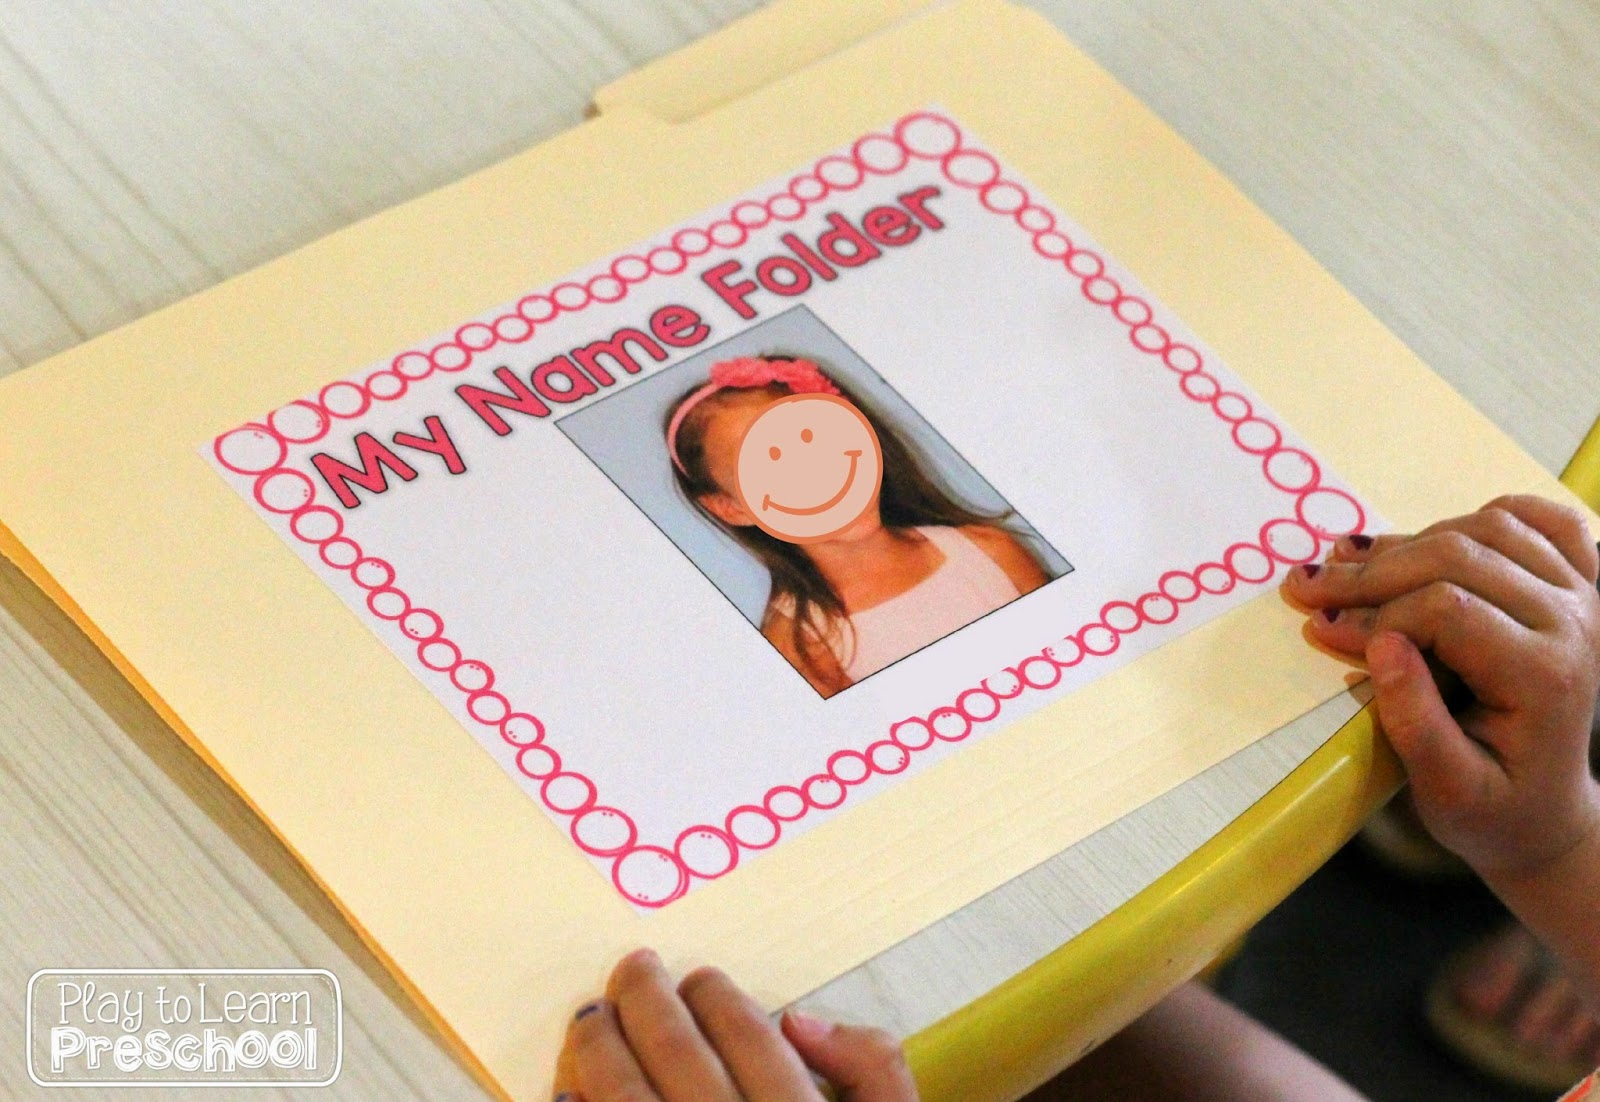 Name Folders: A Portable, Hands-On Way to Learn